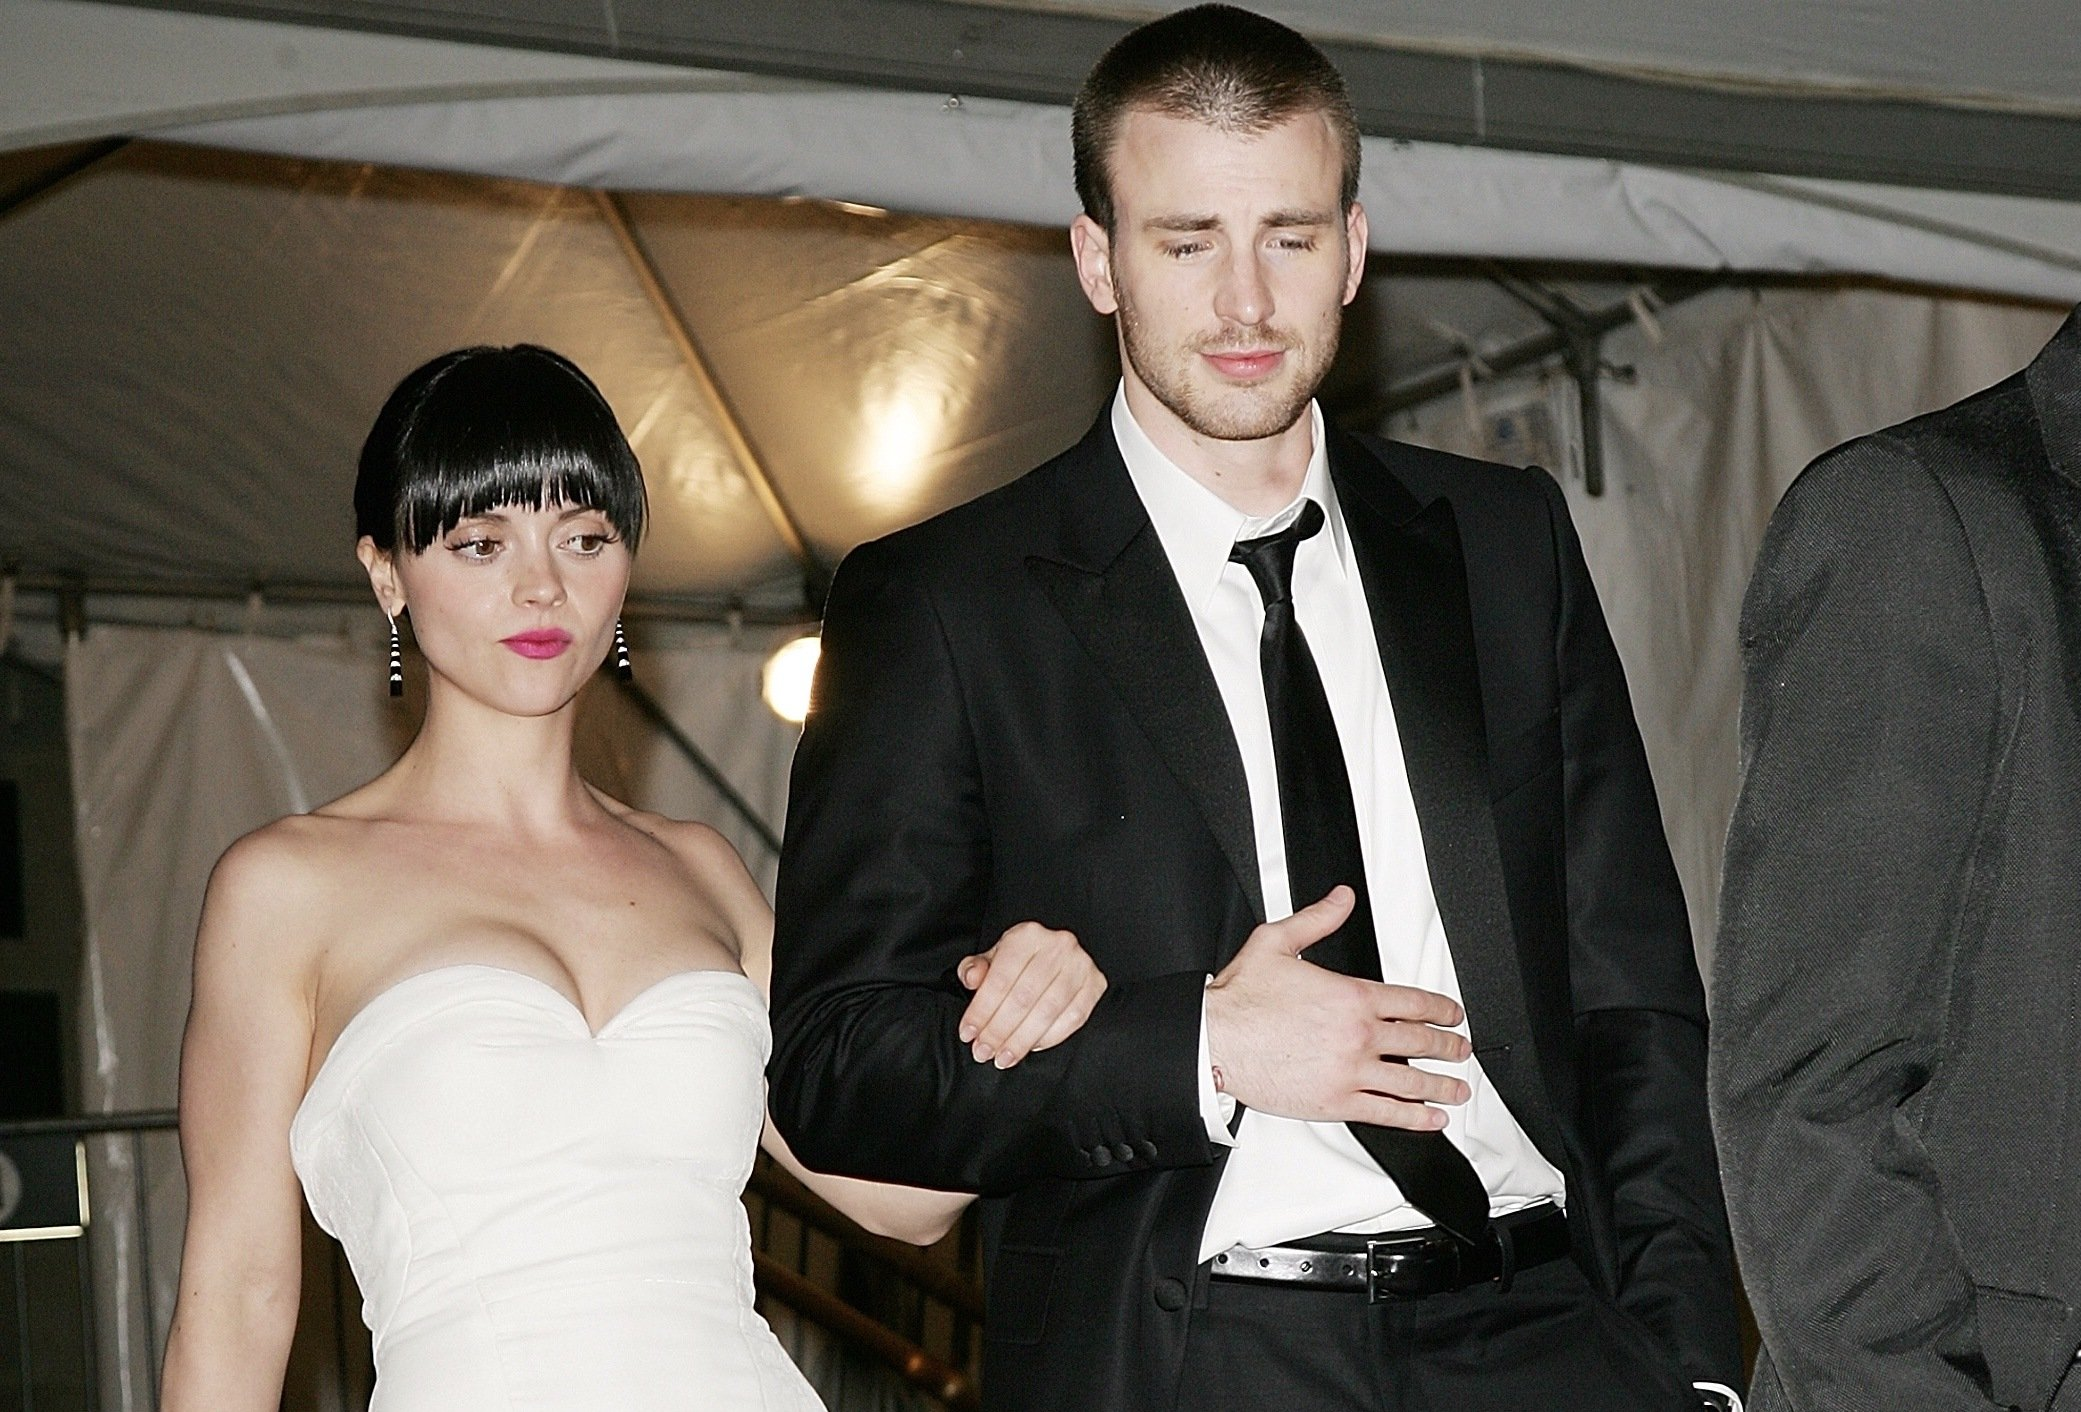 Christina Ricci with Chris Evans in 2007